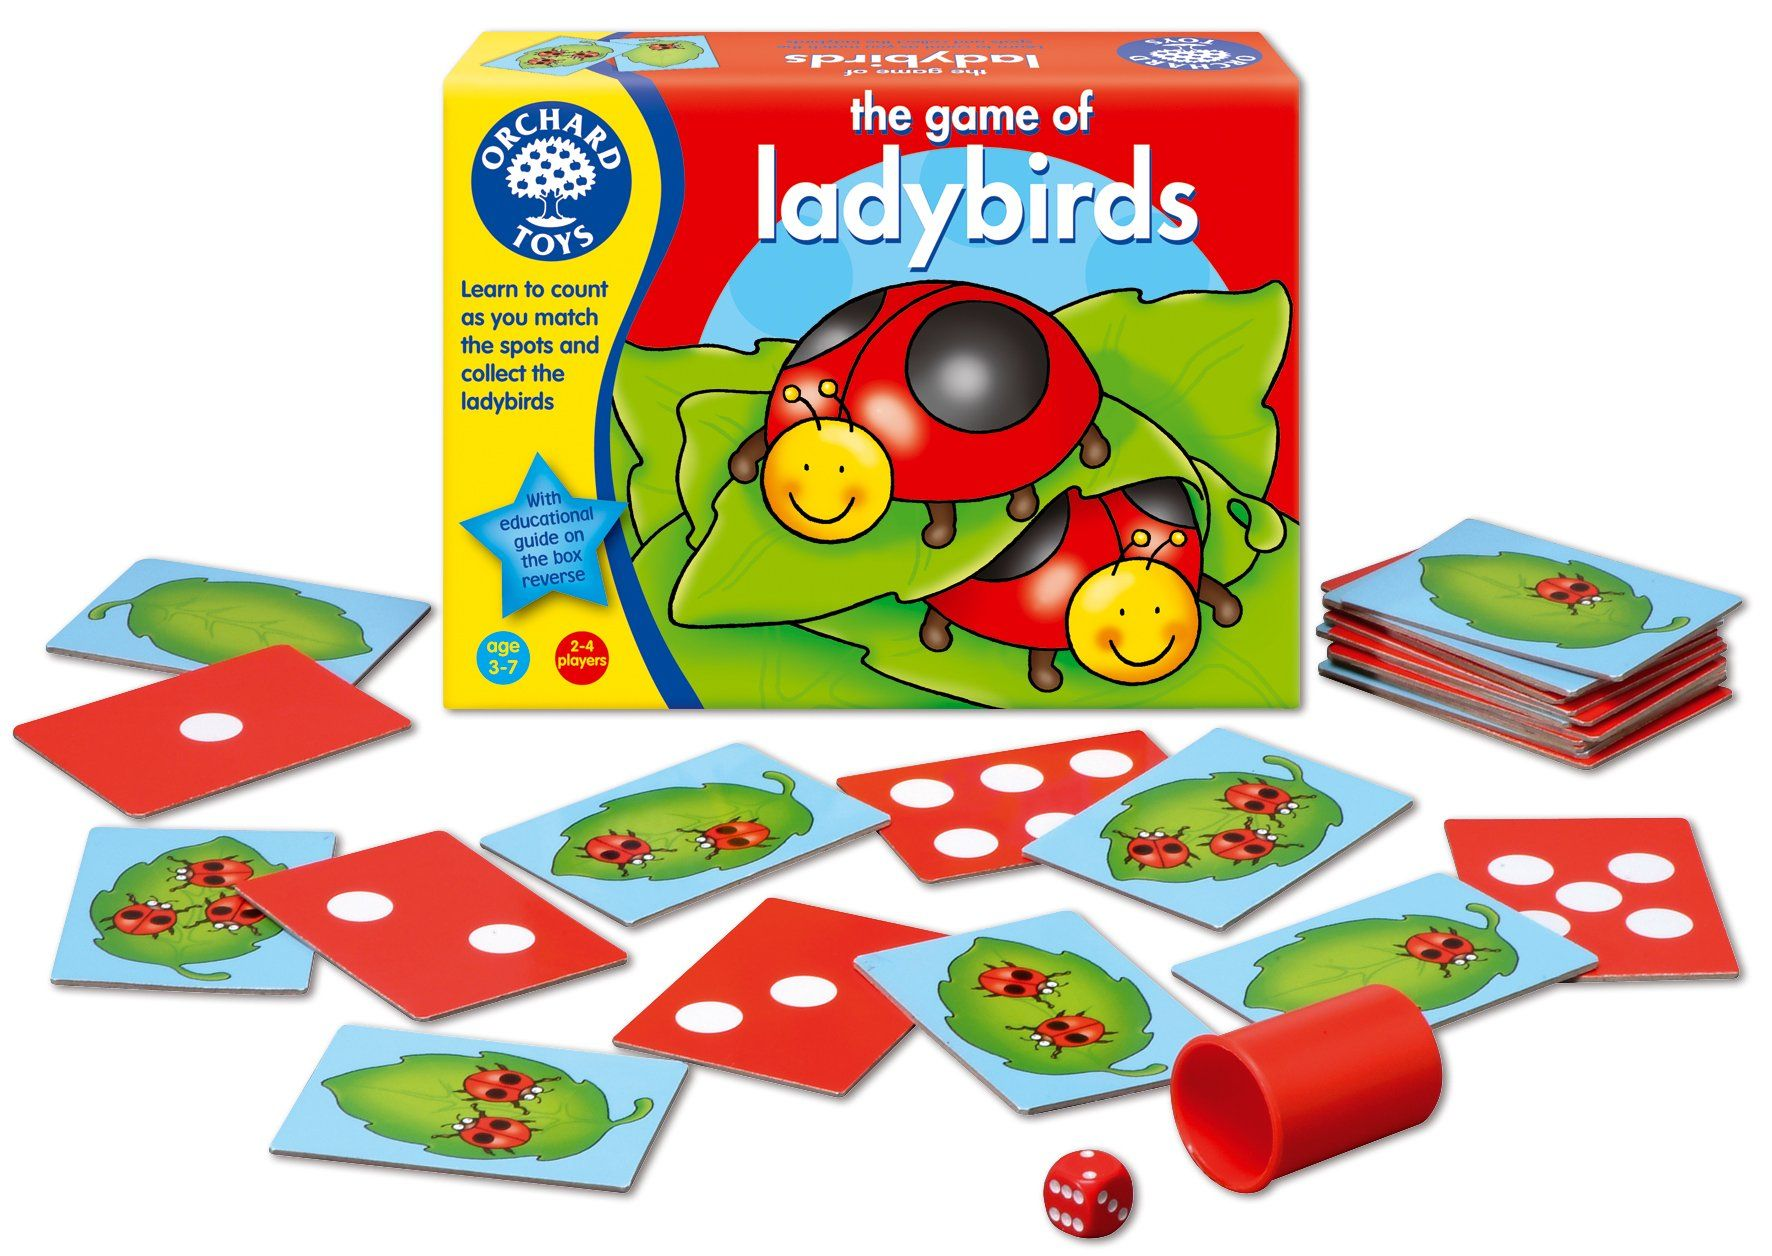 Orchard Toys The Game of Ladybirds: Amazon.co.uk: Toys & Games ...